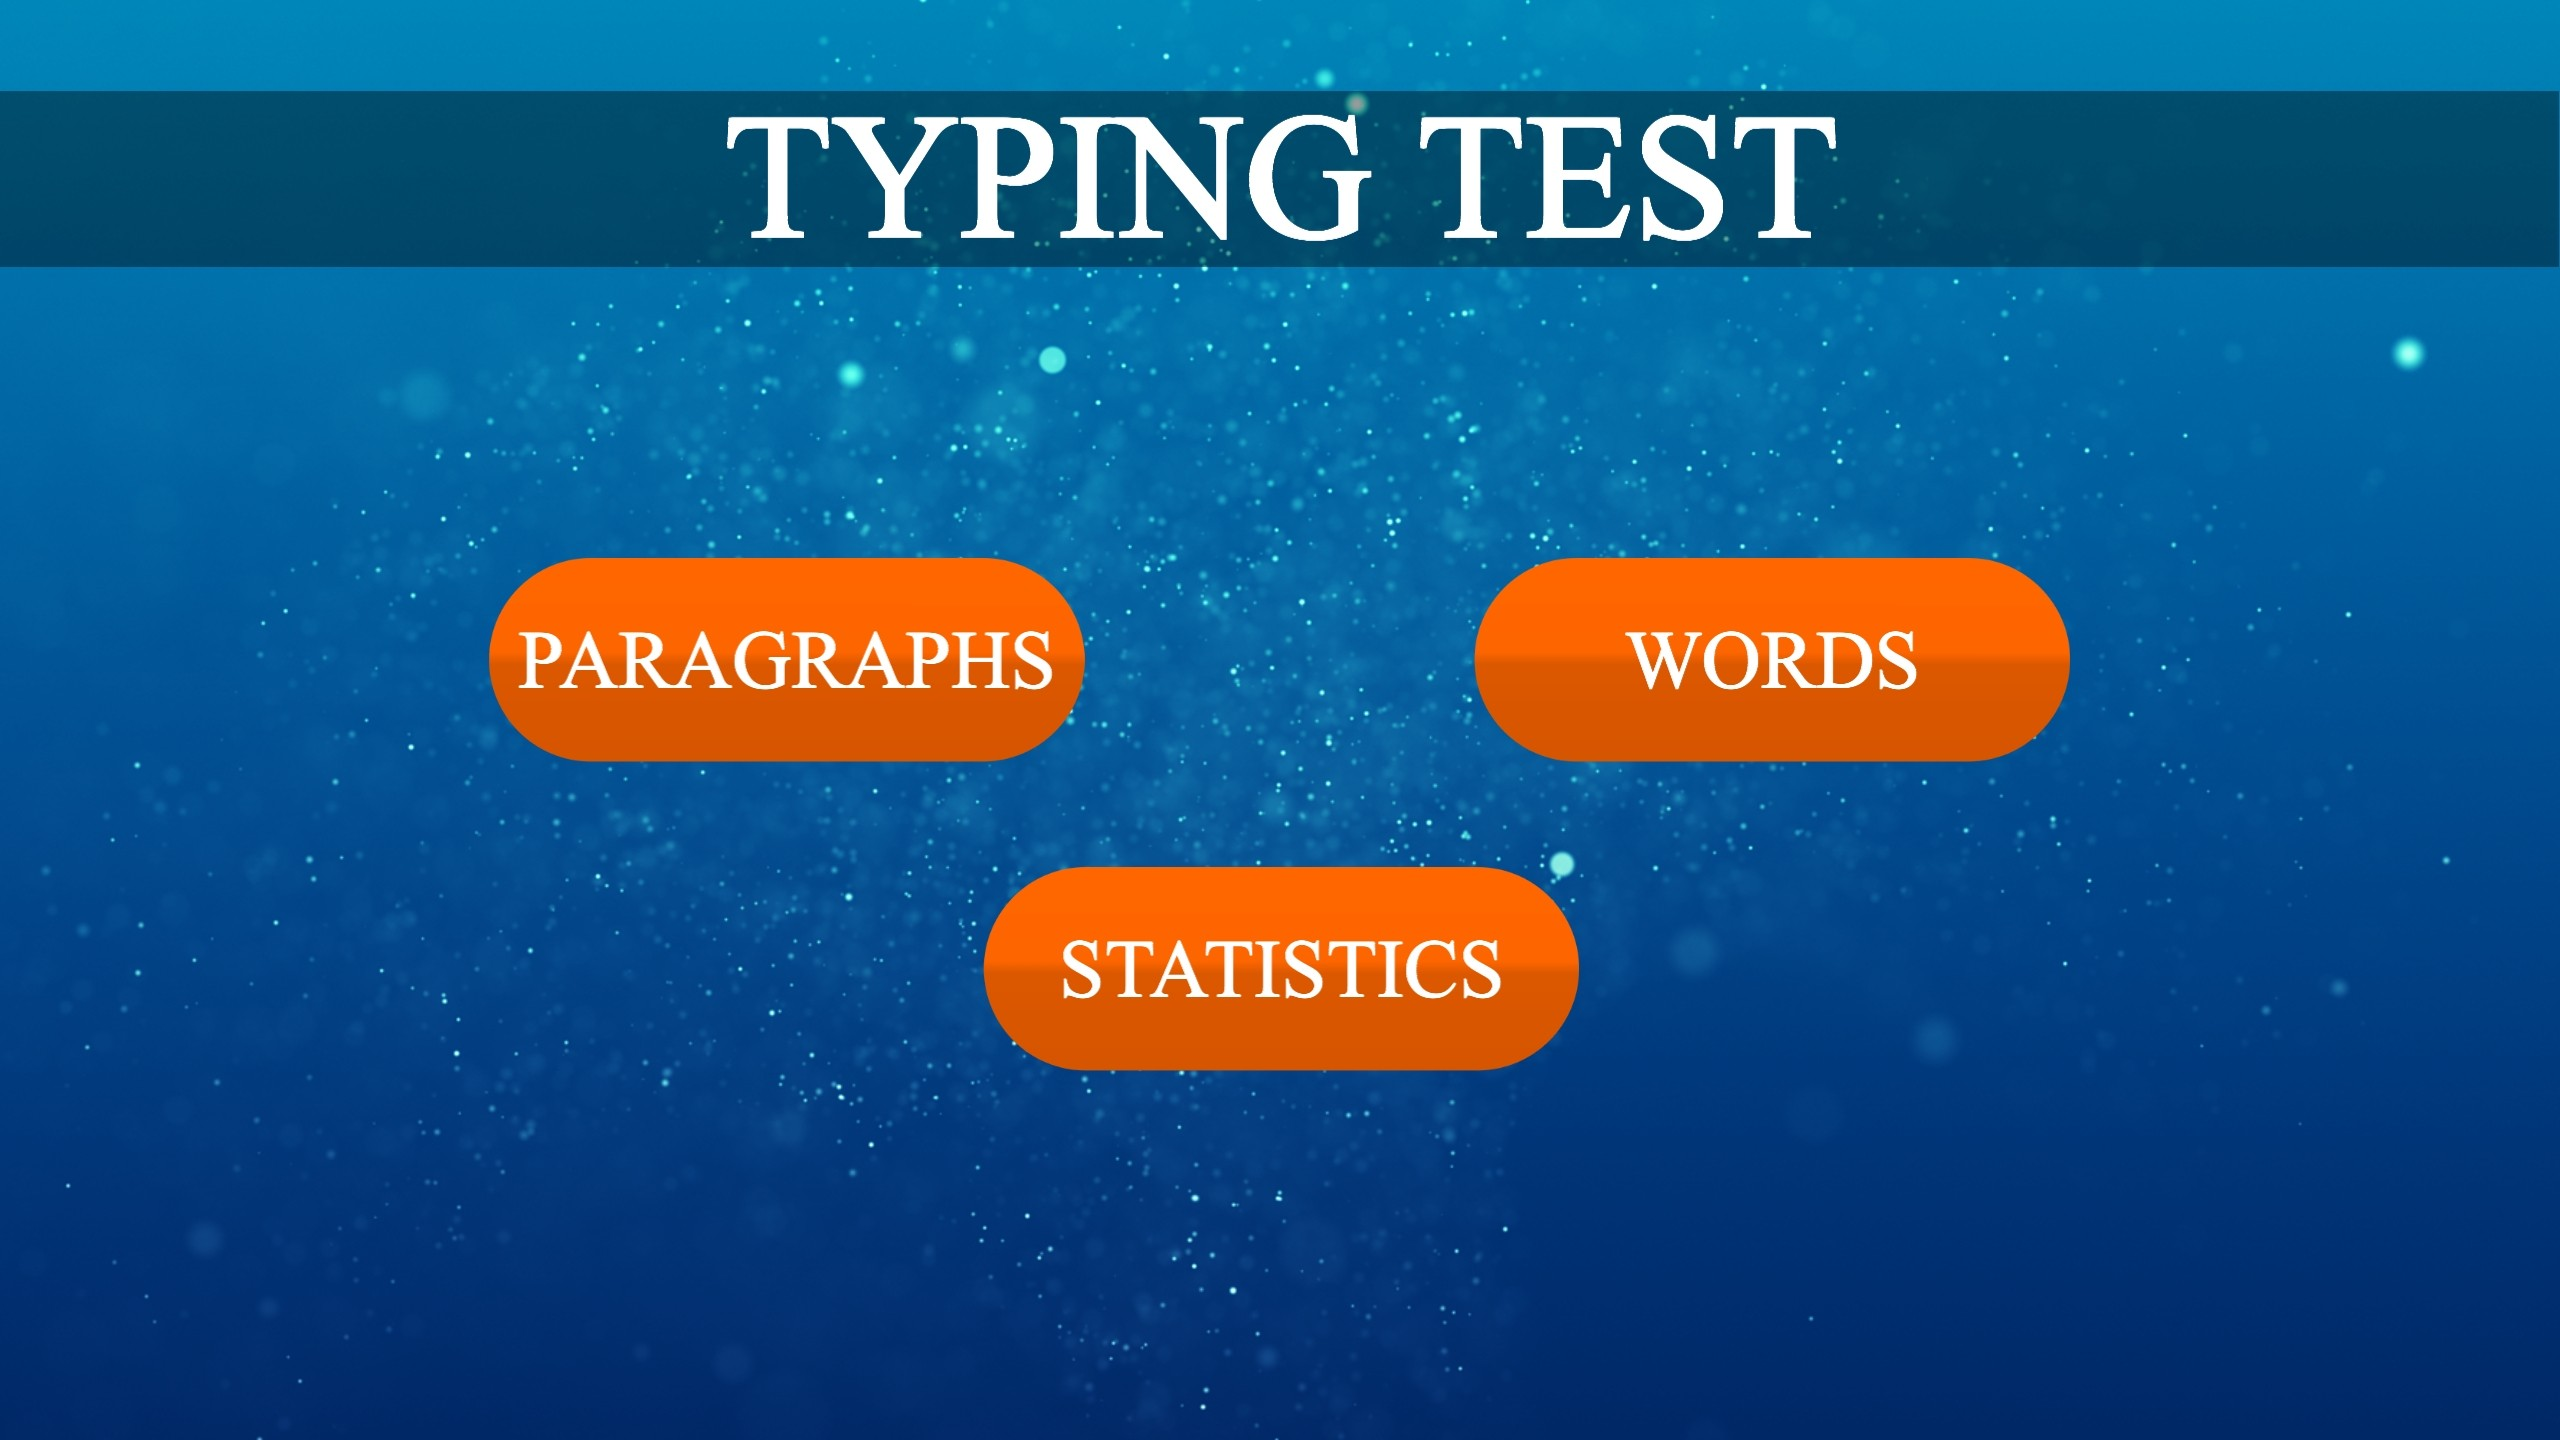 Online typing test 1 minute, Online typing test 5 minutes, Online typing master, Online typing practice, Typing test paragraph, Online typing test in english, 2 minute typing test, Typing test download,